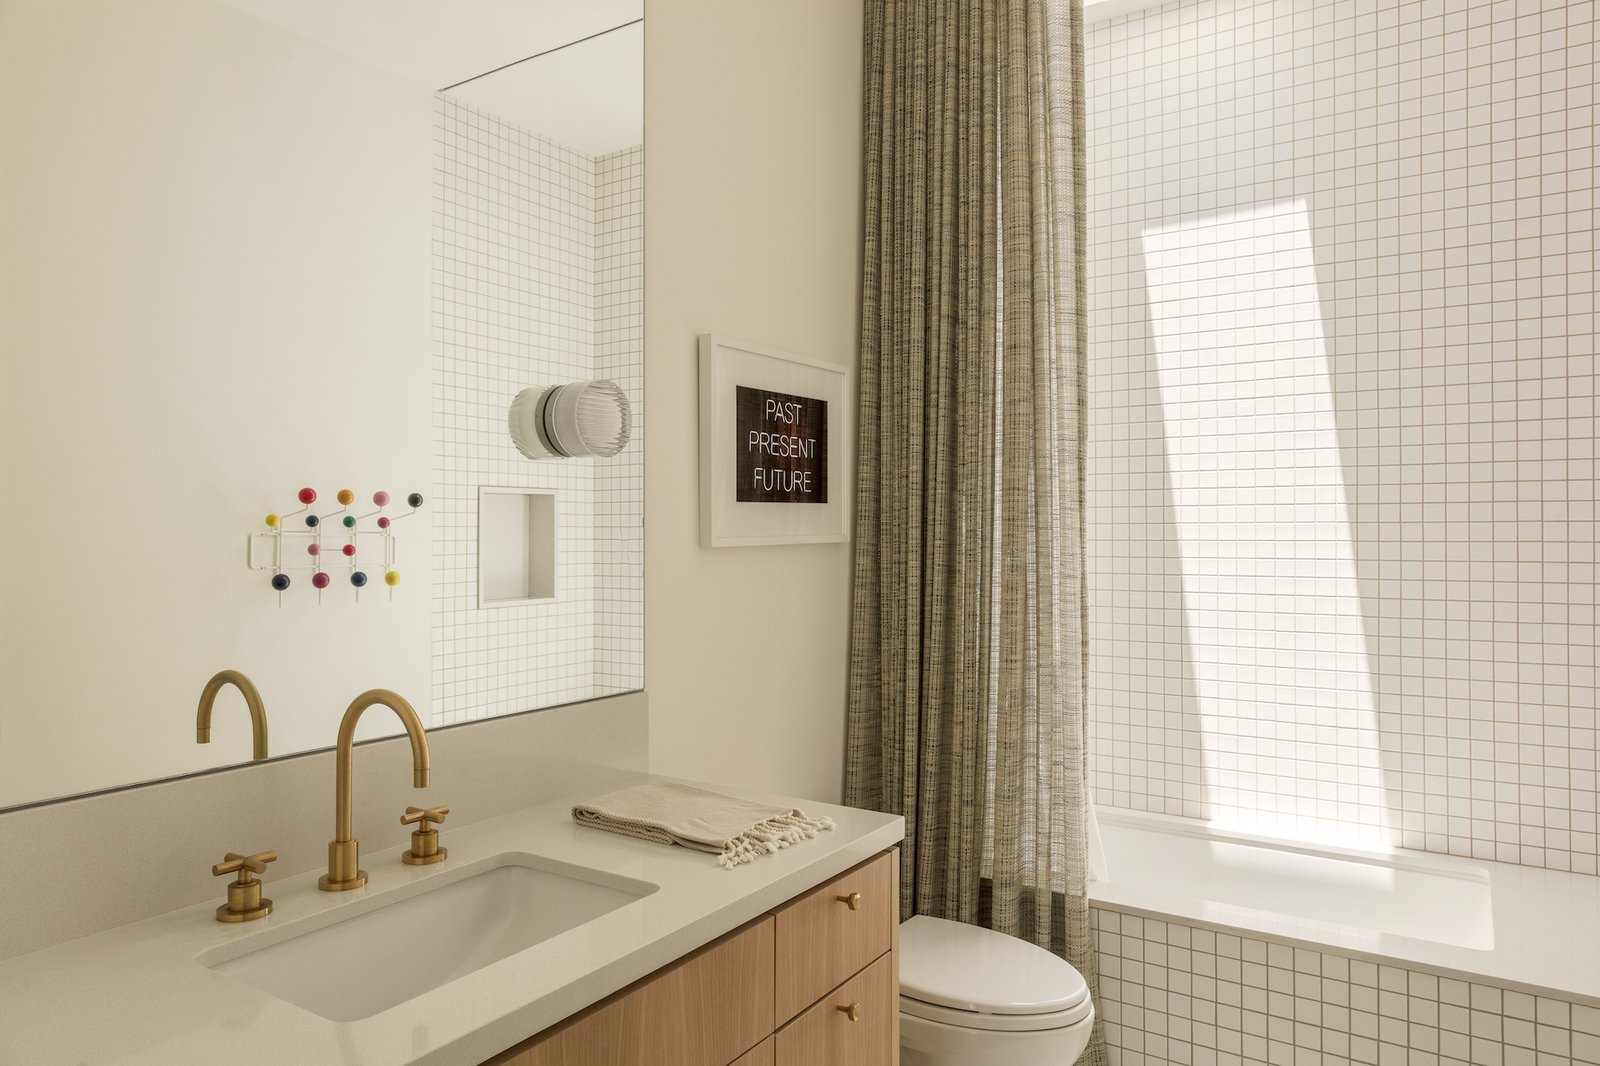 Guest bathroom at Culver City Case Study House by Woods + Dangaran